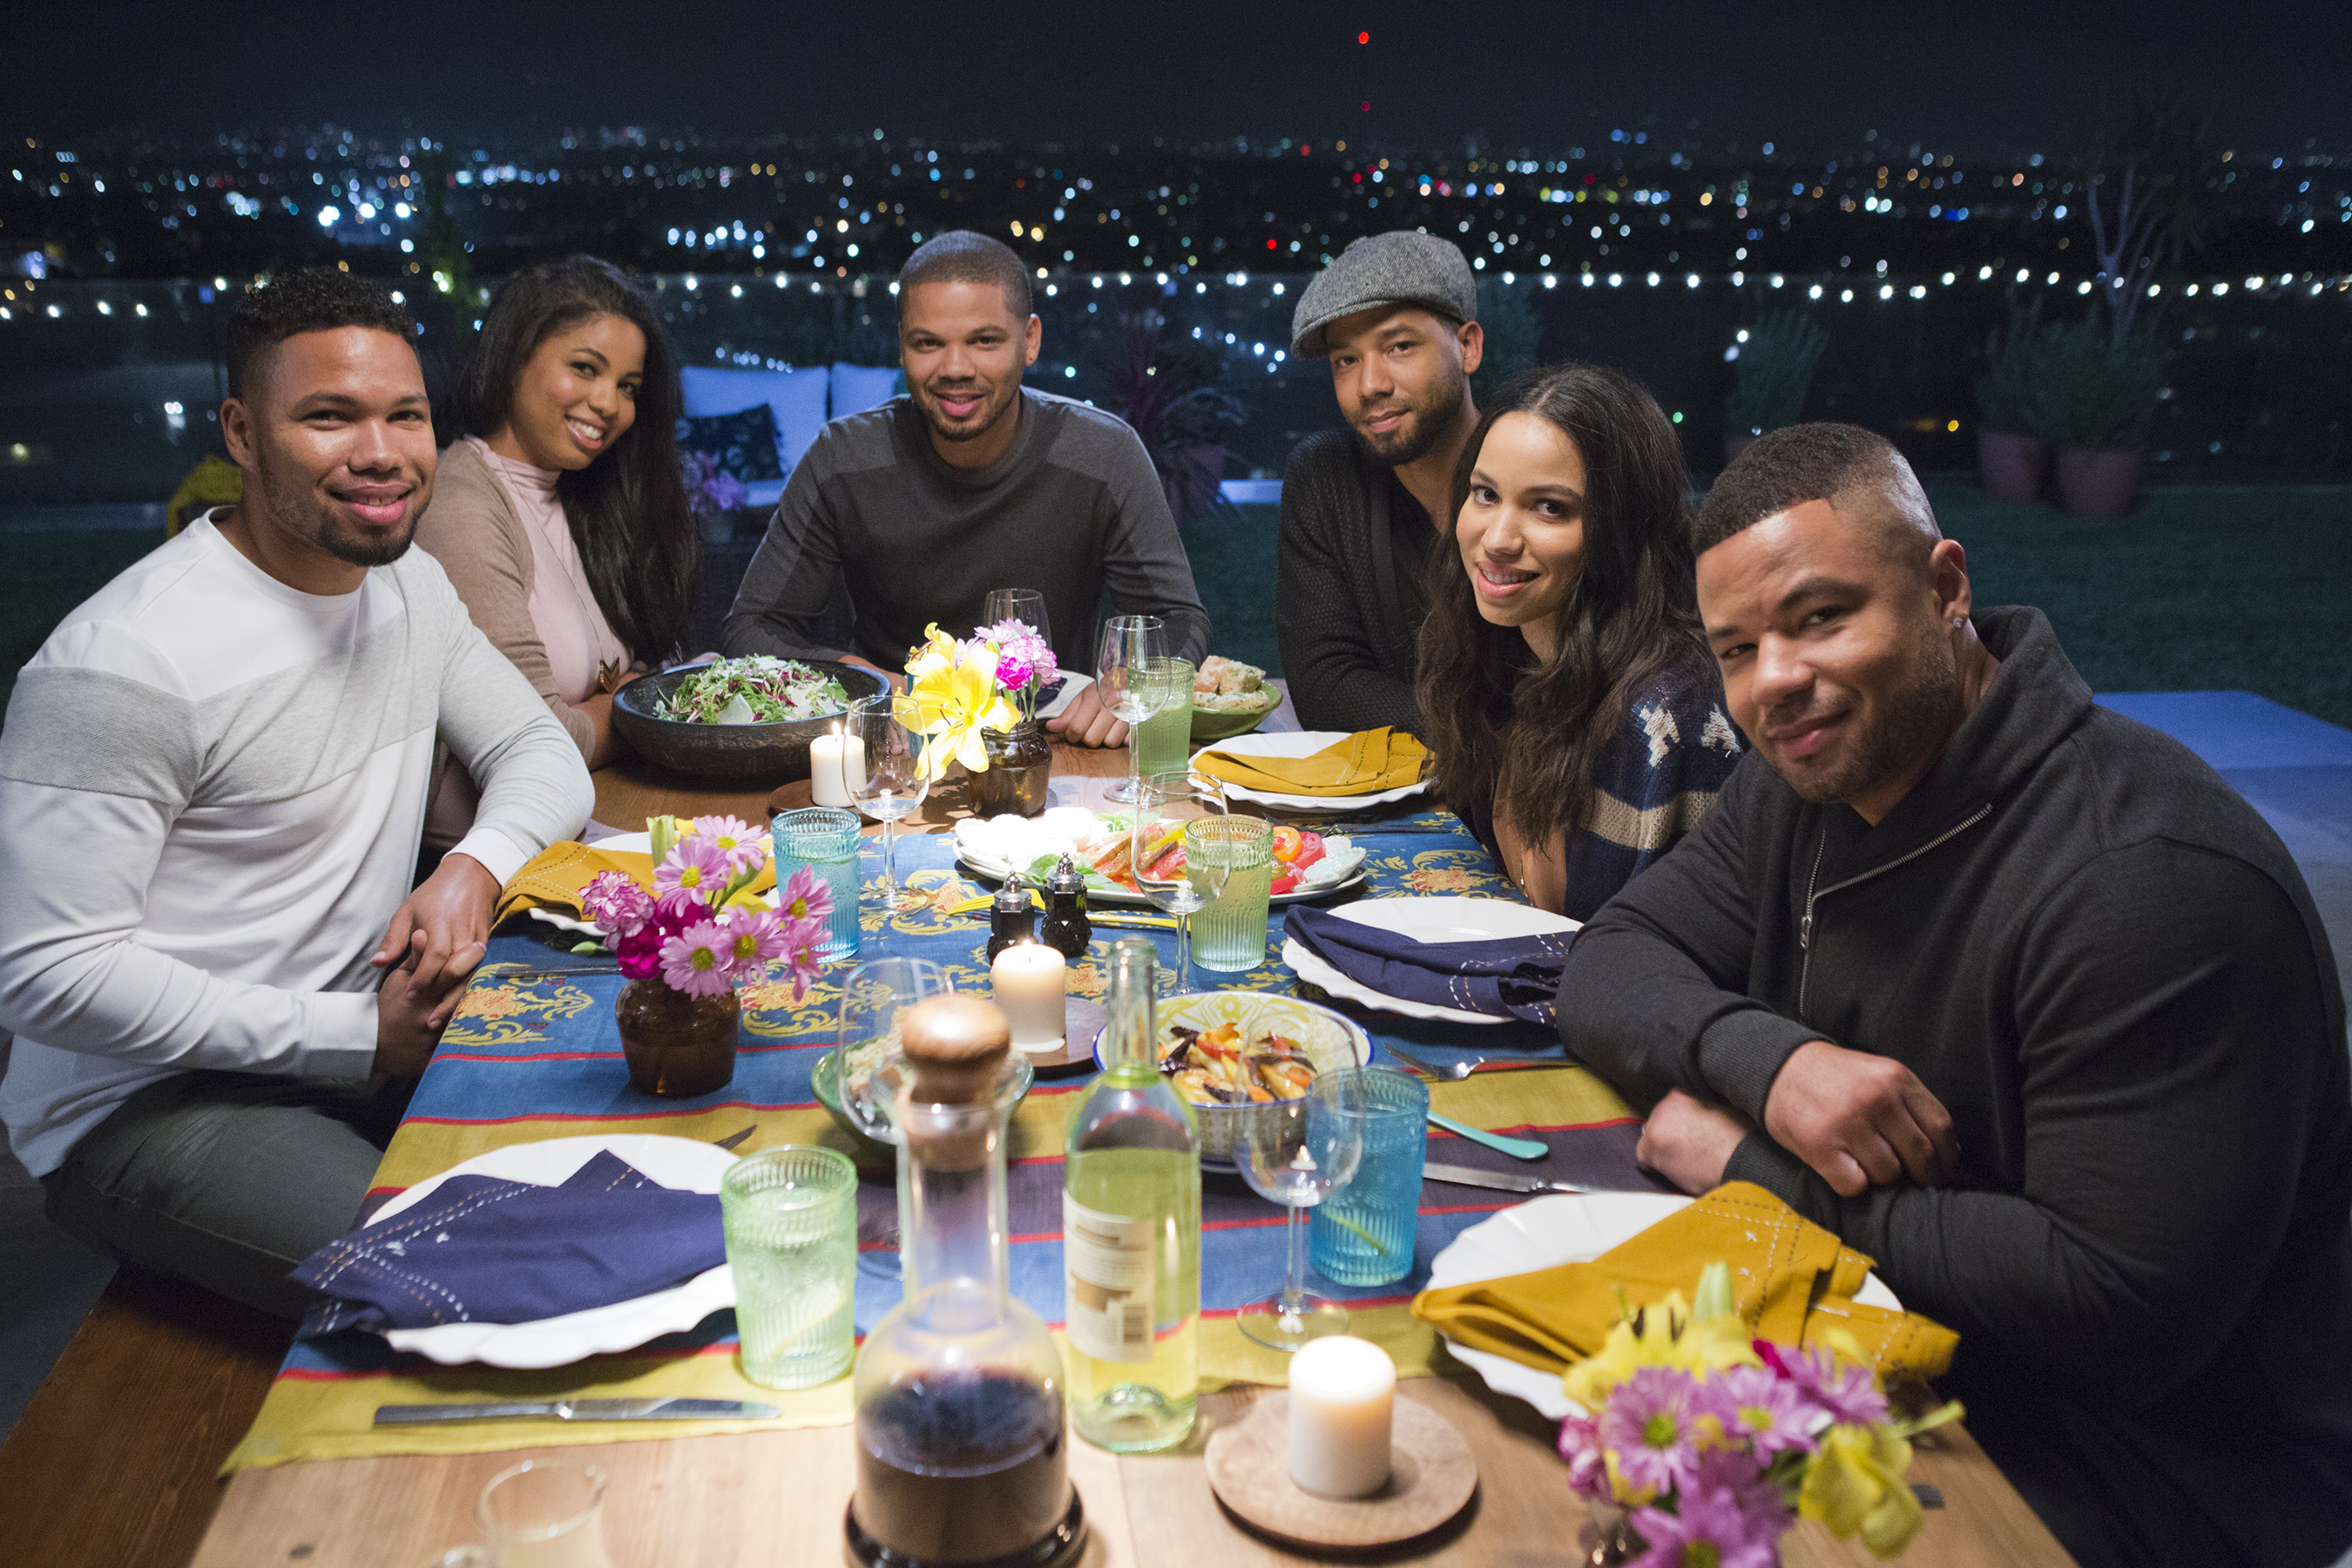 MULTI-TALENTED SMOLLETT FAMILY SERVES UP FUN, FOOD AND ...